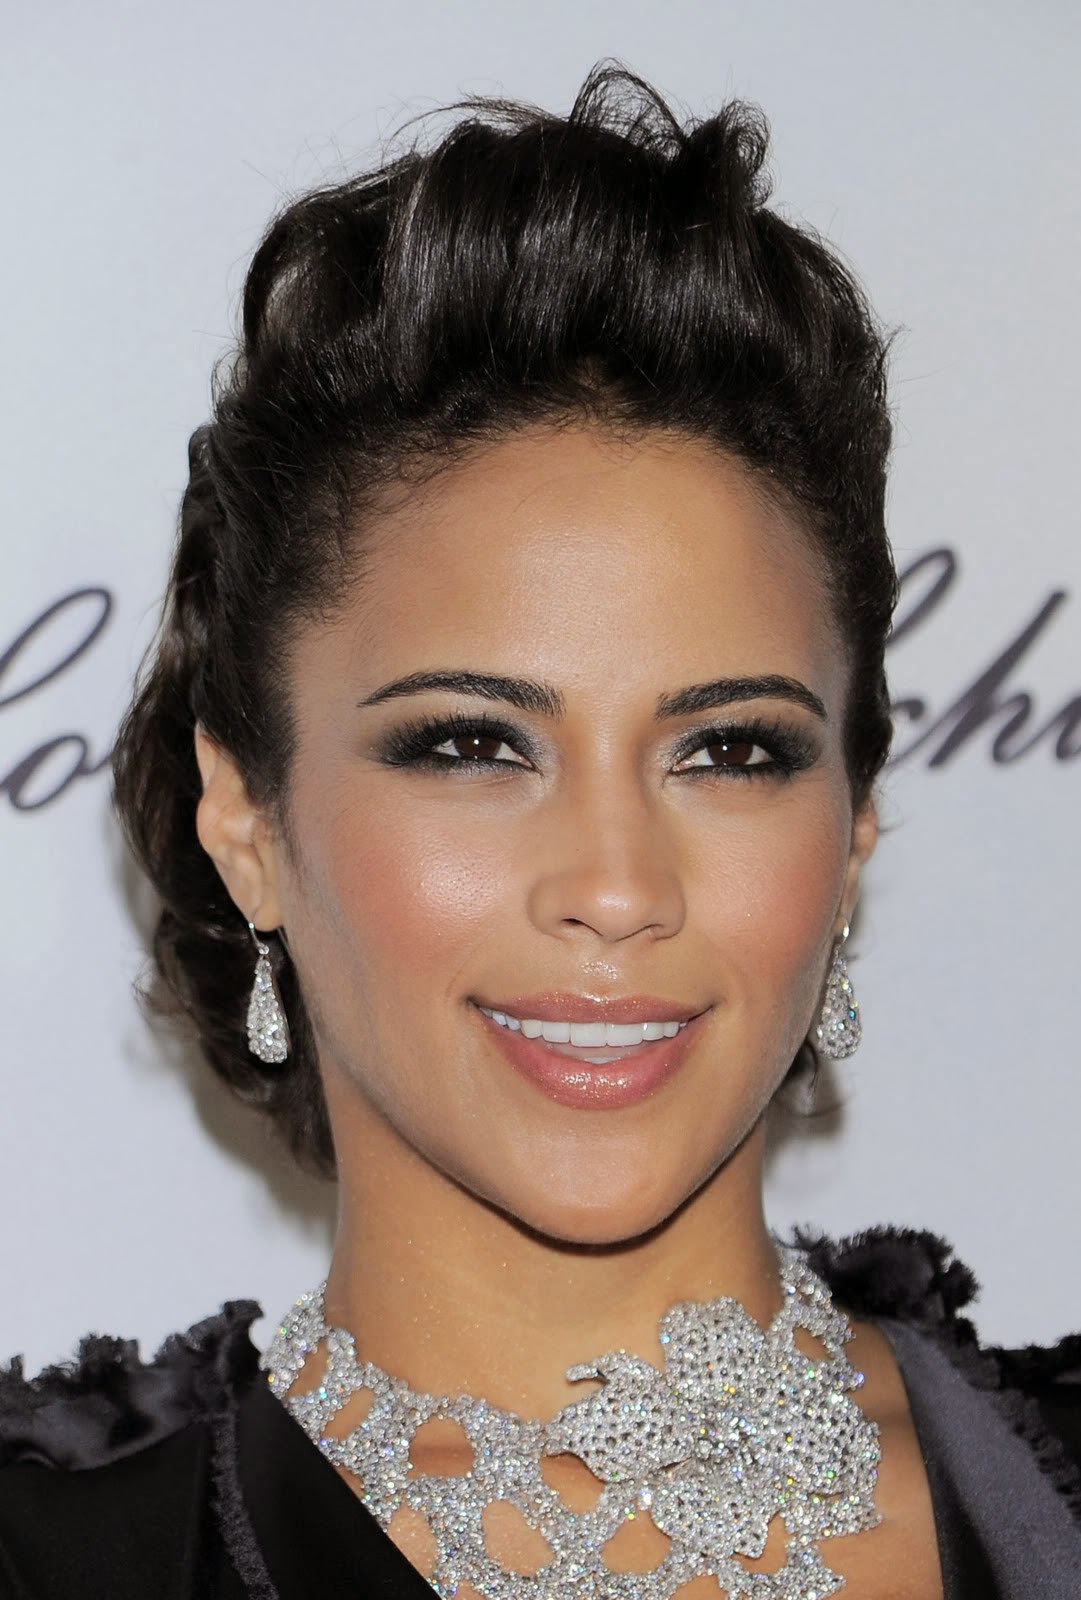 singles in patton Paula patton has a new boyfriendthe 'mission: impossible - ghost protocol' star is dating again following her divorce from robin thicke.